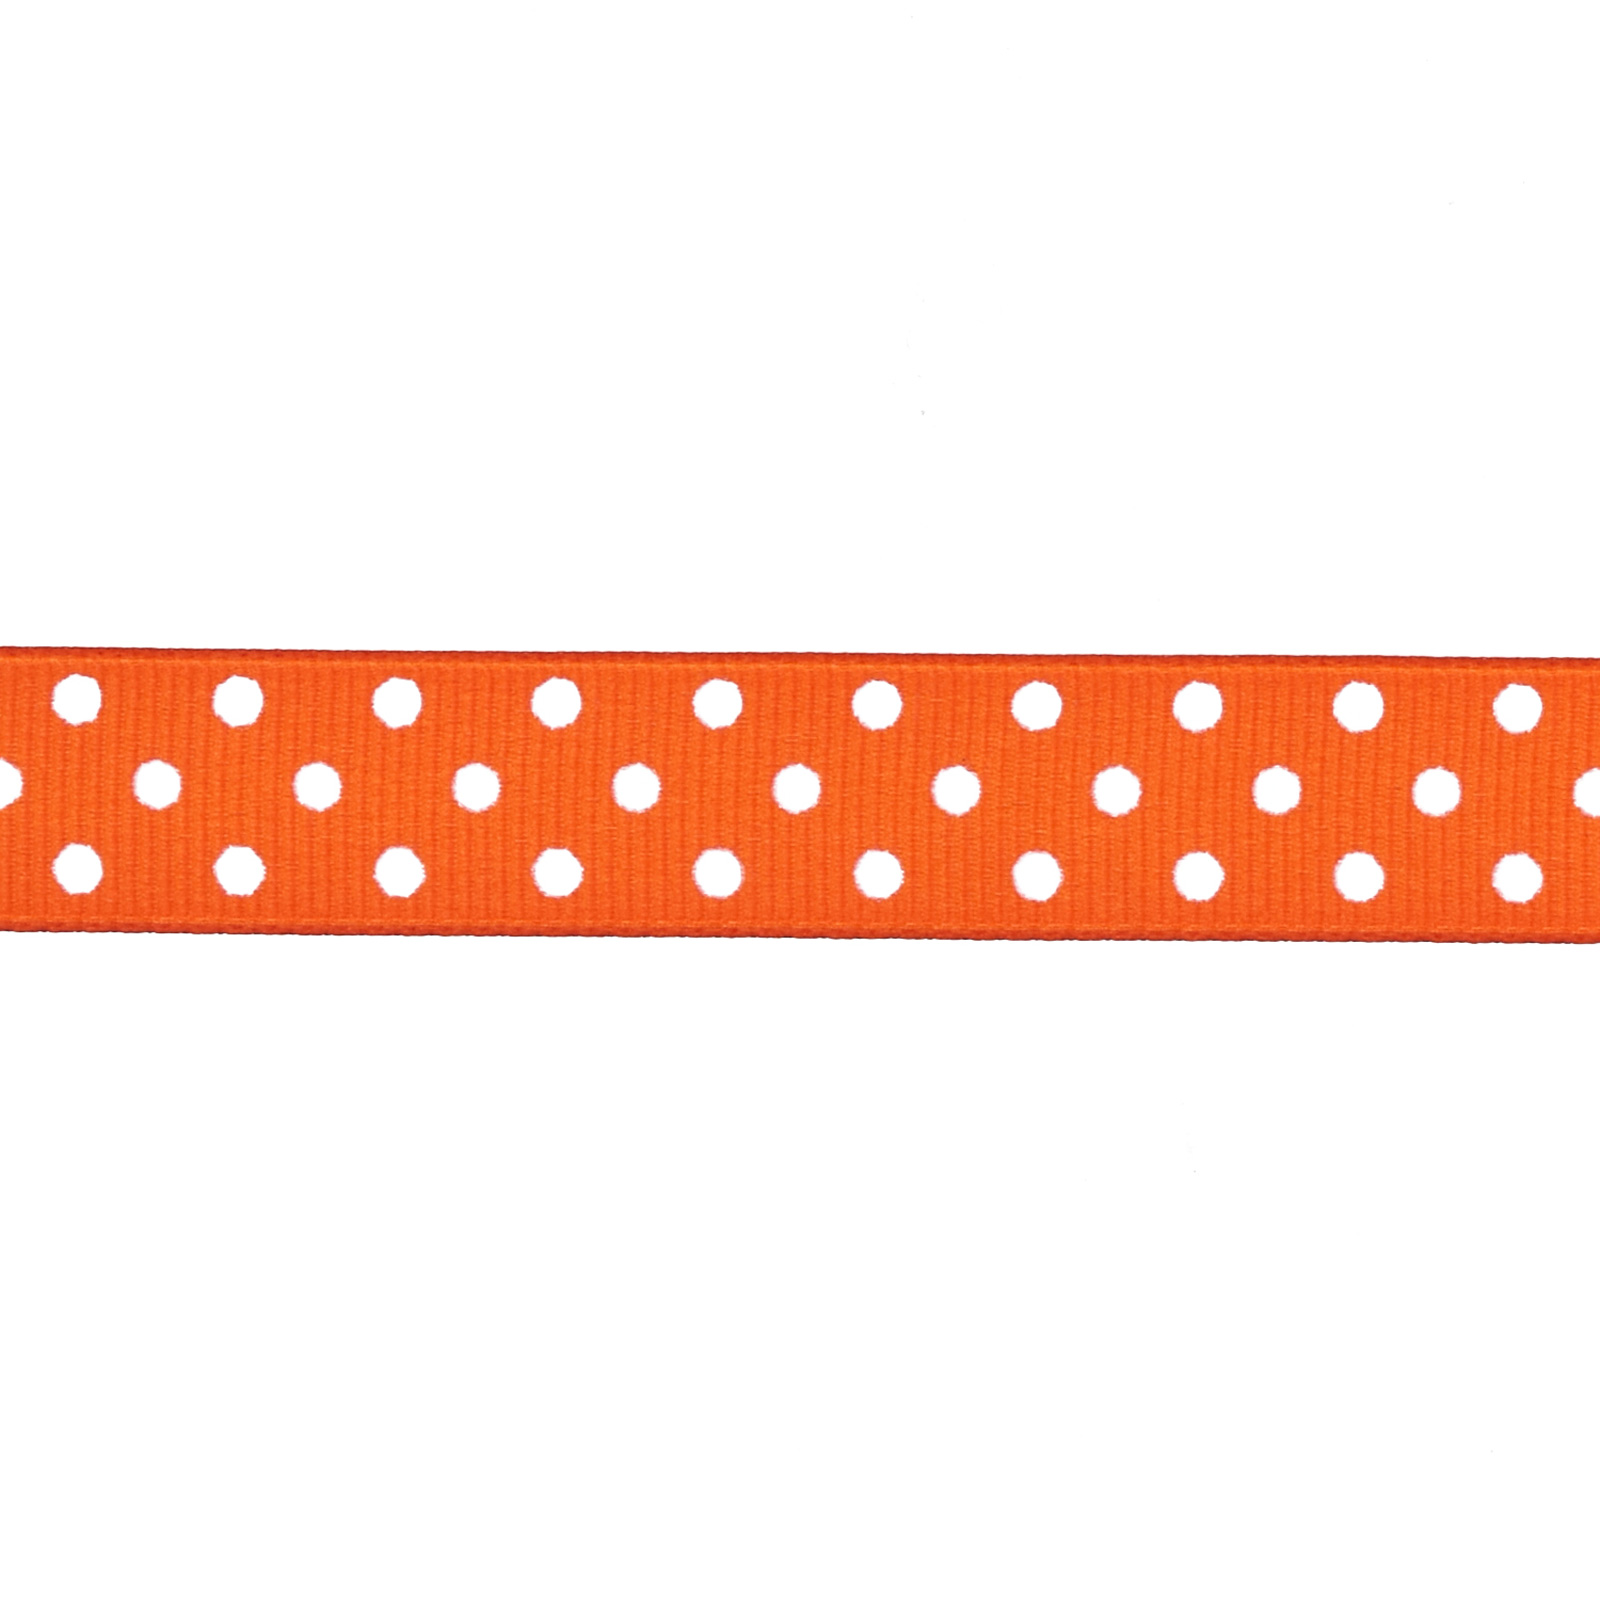 5/8'' Grosgrain Ribbon Polka Dots Orange/White Fabric